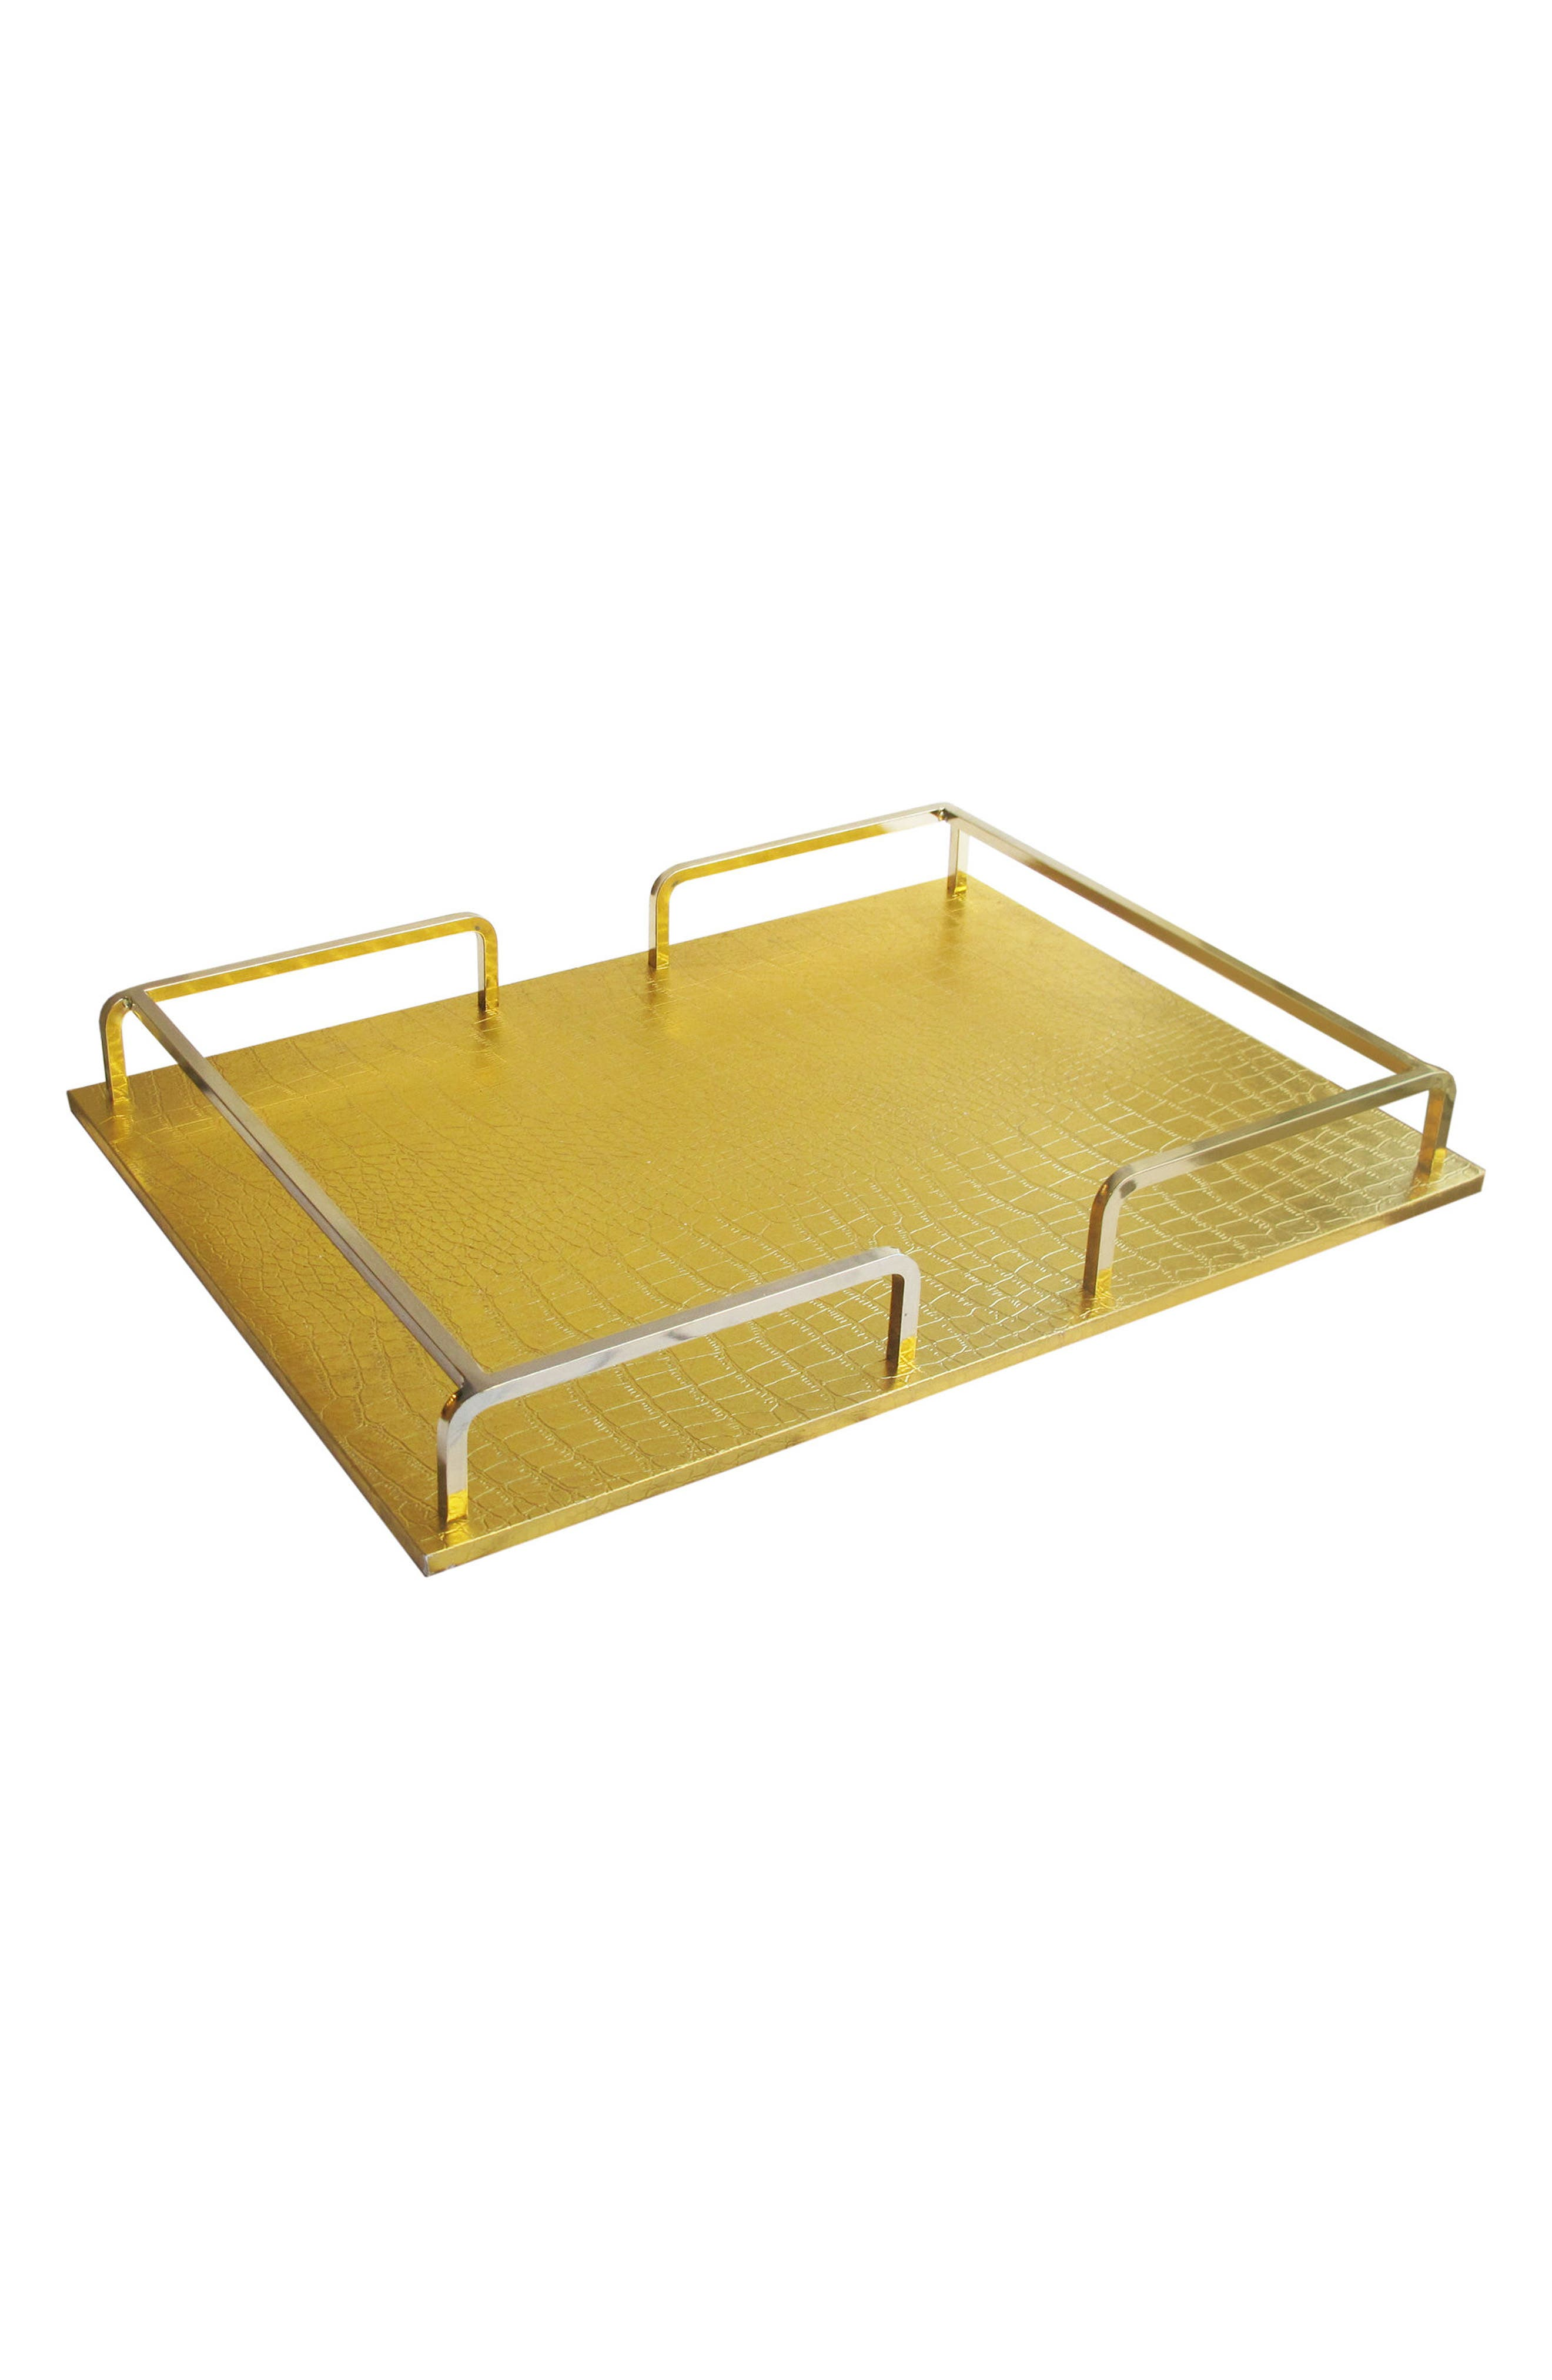 Croc-Embossed Serving Tray,                             Main thumbnail 1, color,                             Gold